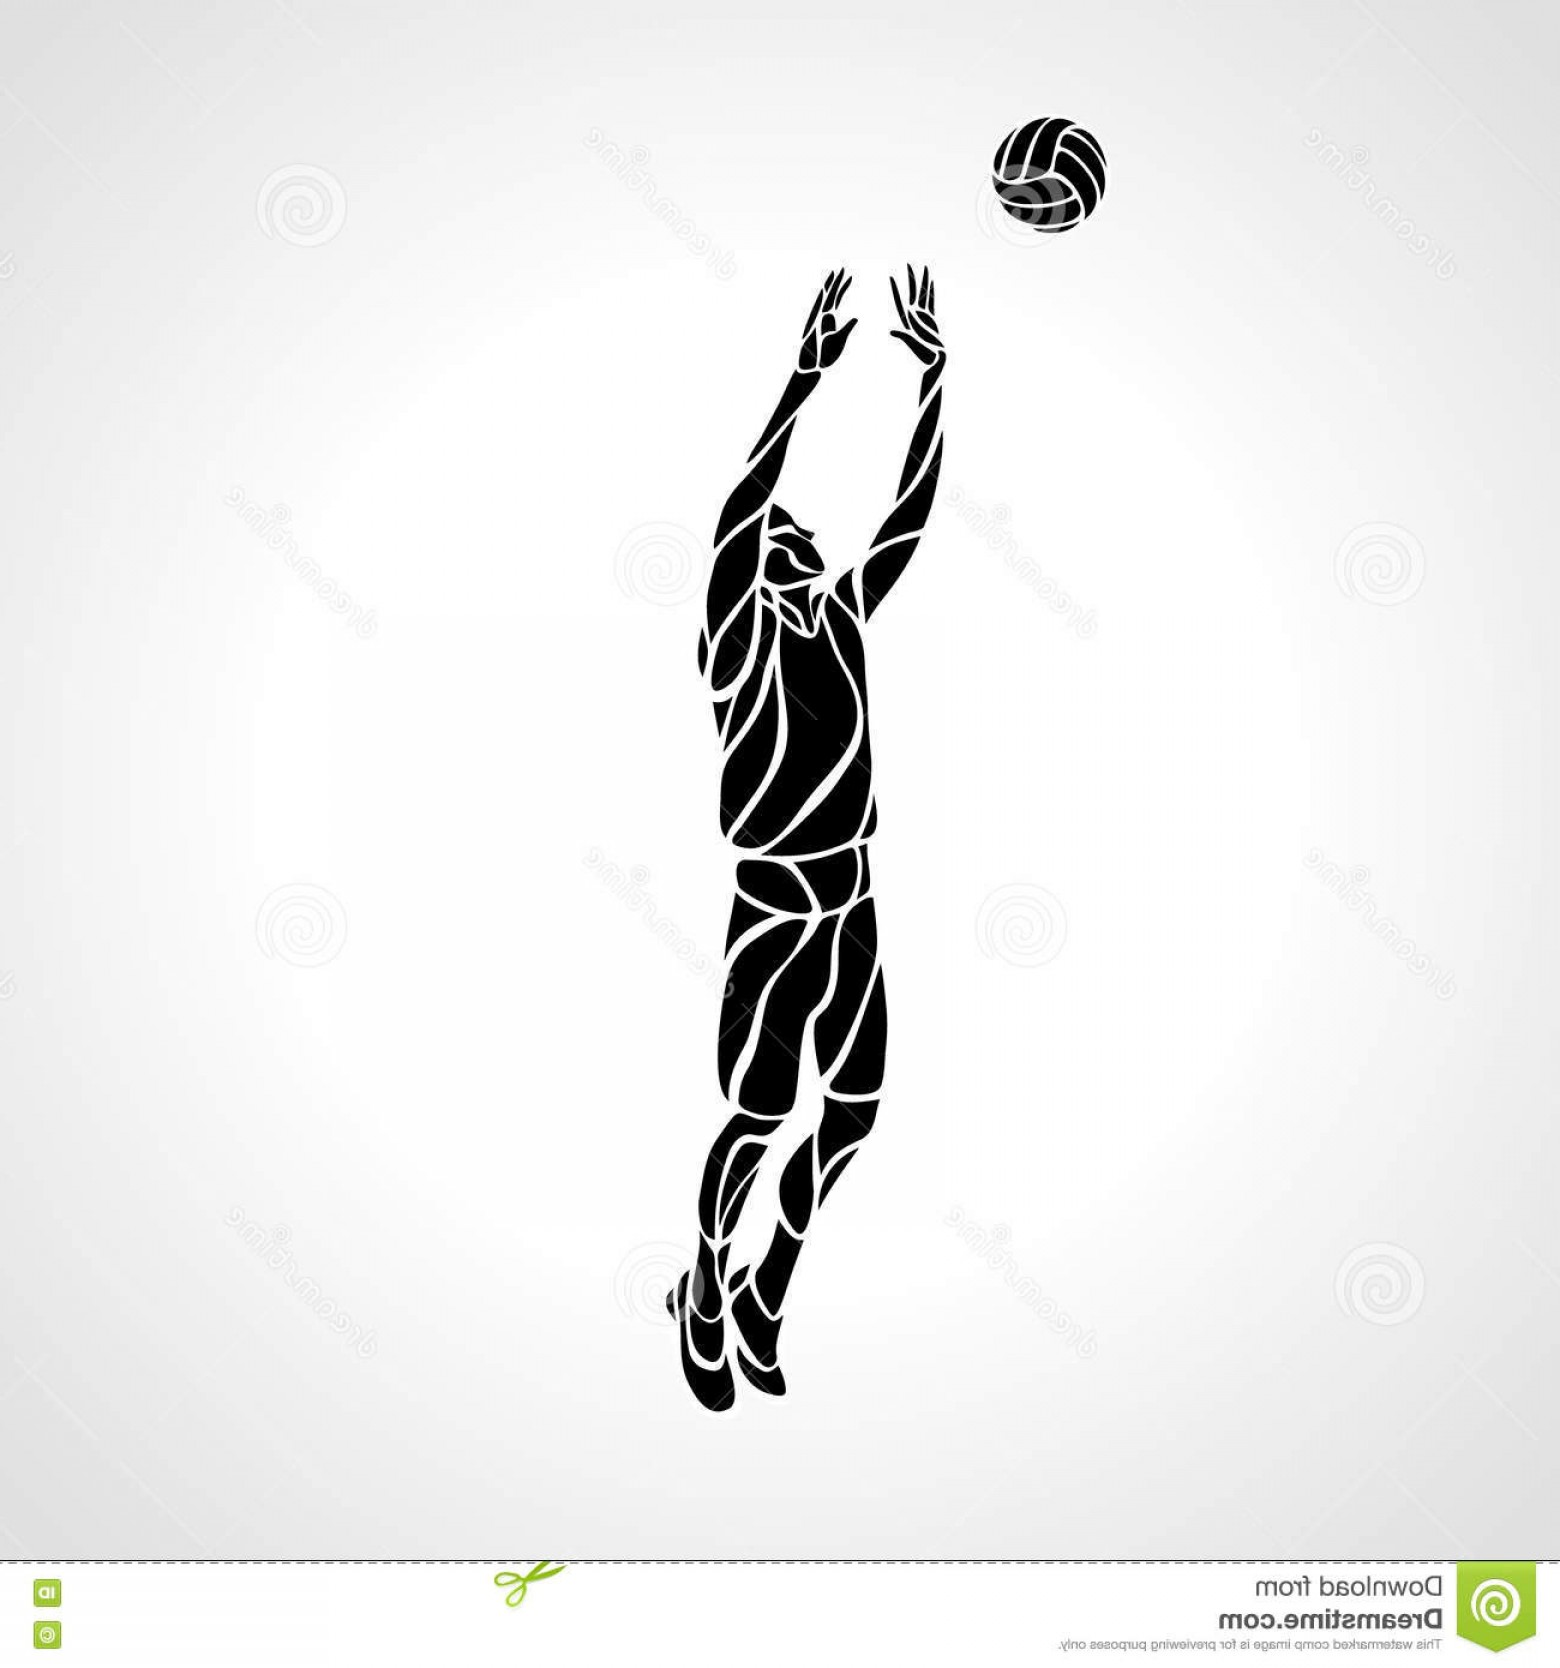 Volleyball Player Vector: Stock Illustration Volleyball Setter Silhouette Vector Illustration Stylized Athlete Played Player Position Eps Image